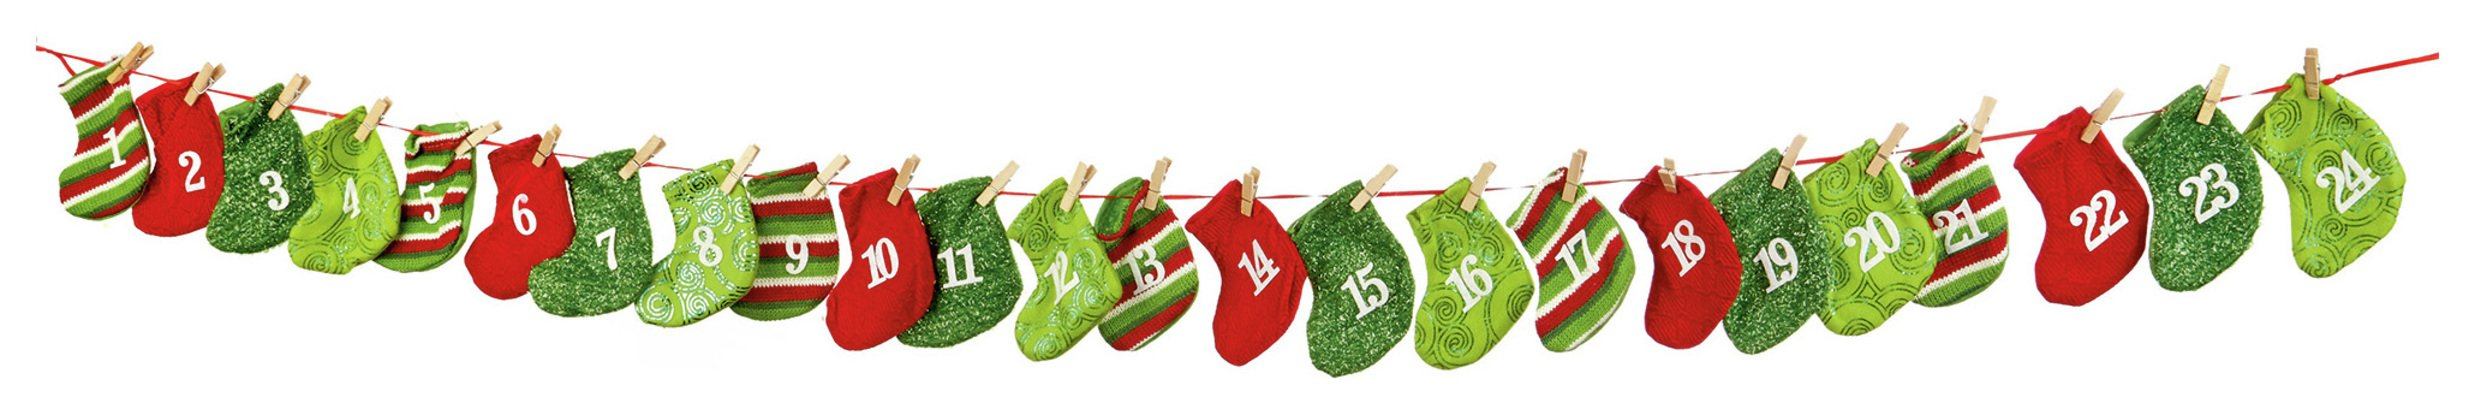 premier-decorations-16m-mini-advent-stocking-garland